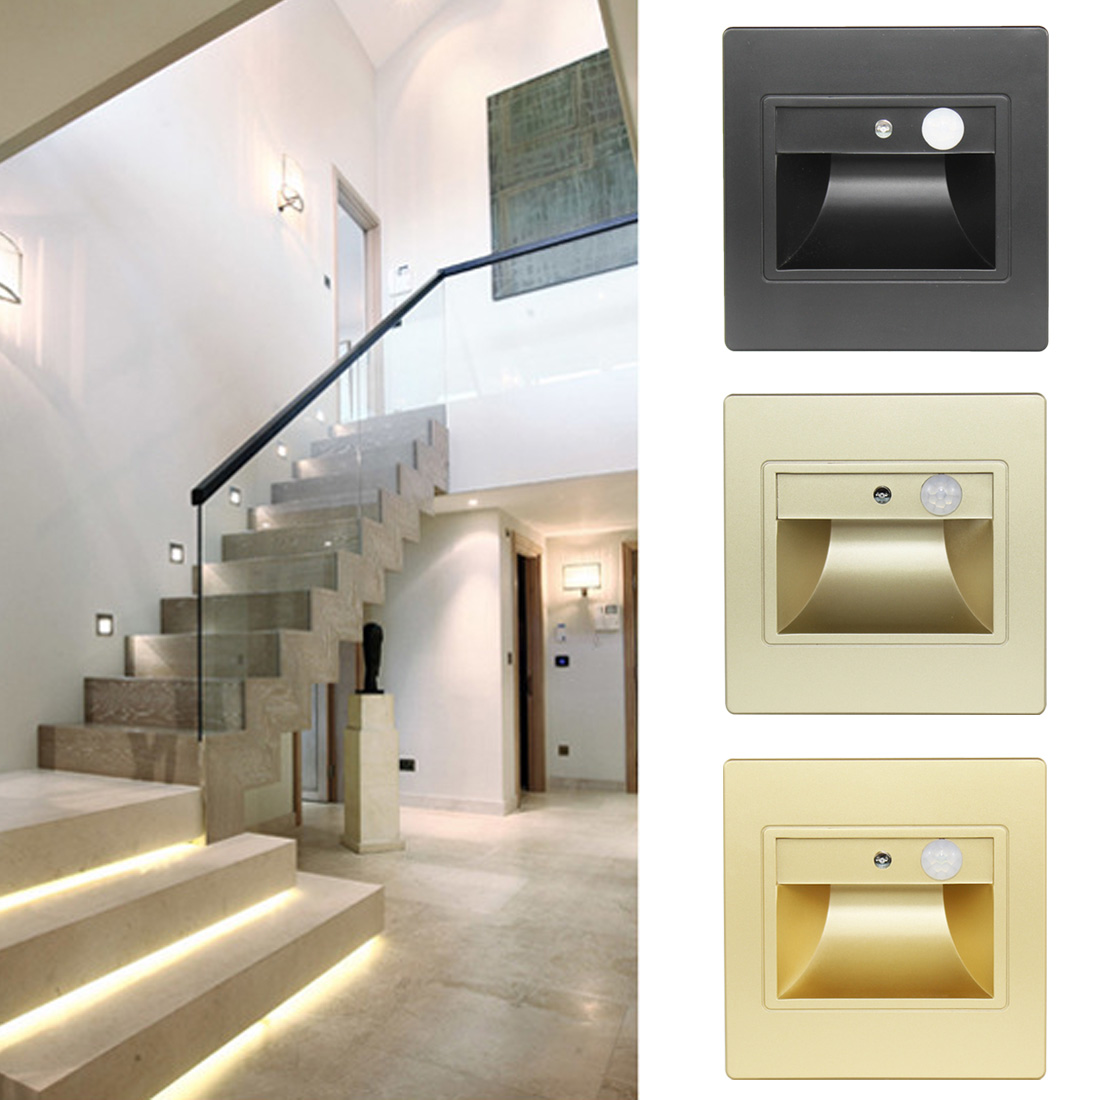 Indoor led stair lights motion sensor powerdyne torque multiplier